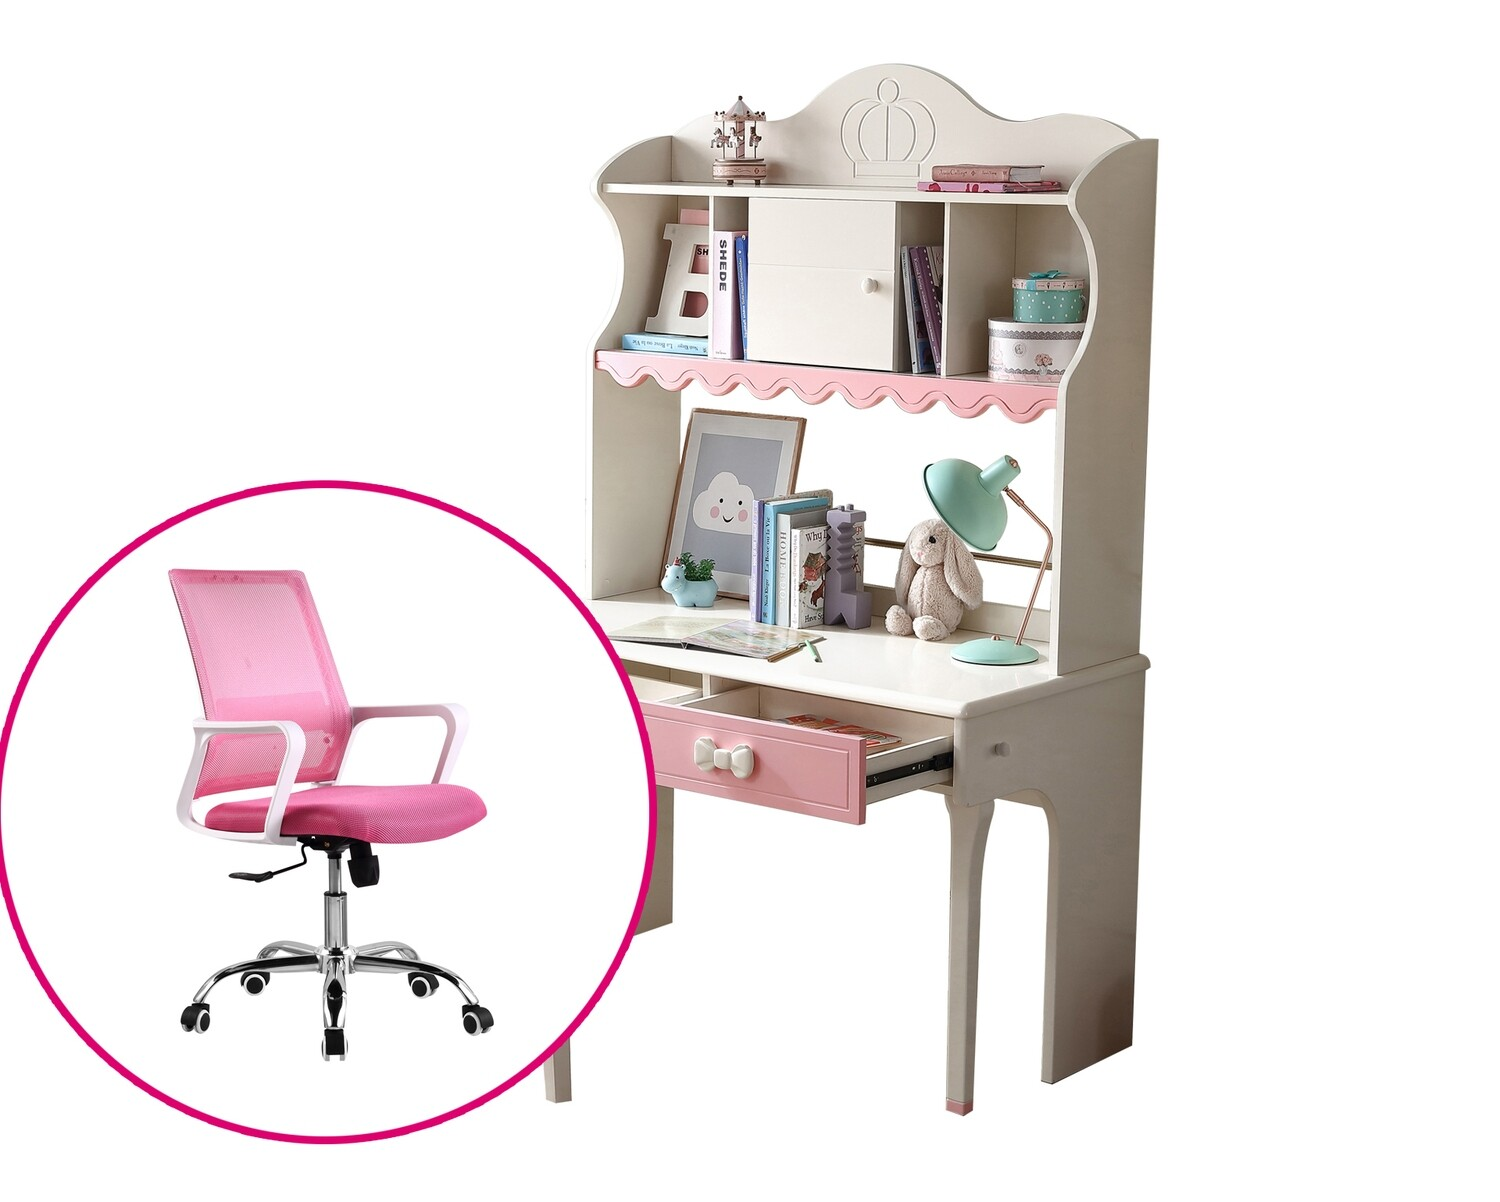 Ofix Milana Bedroom Bookcase Desk Set (Pink+White)